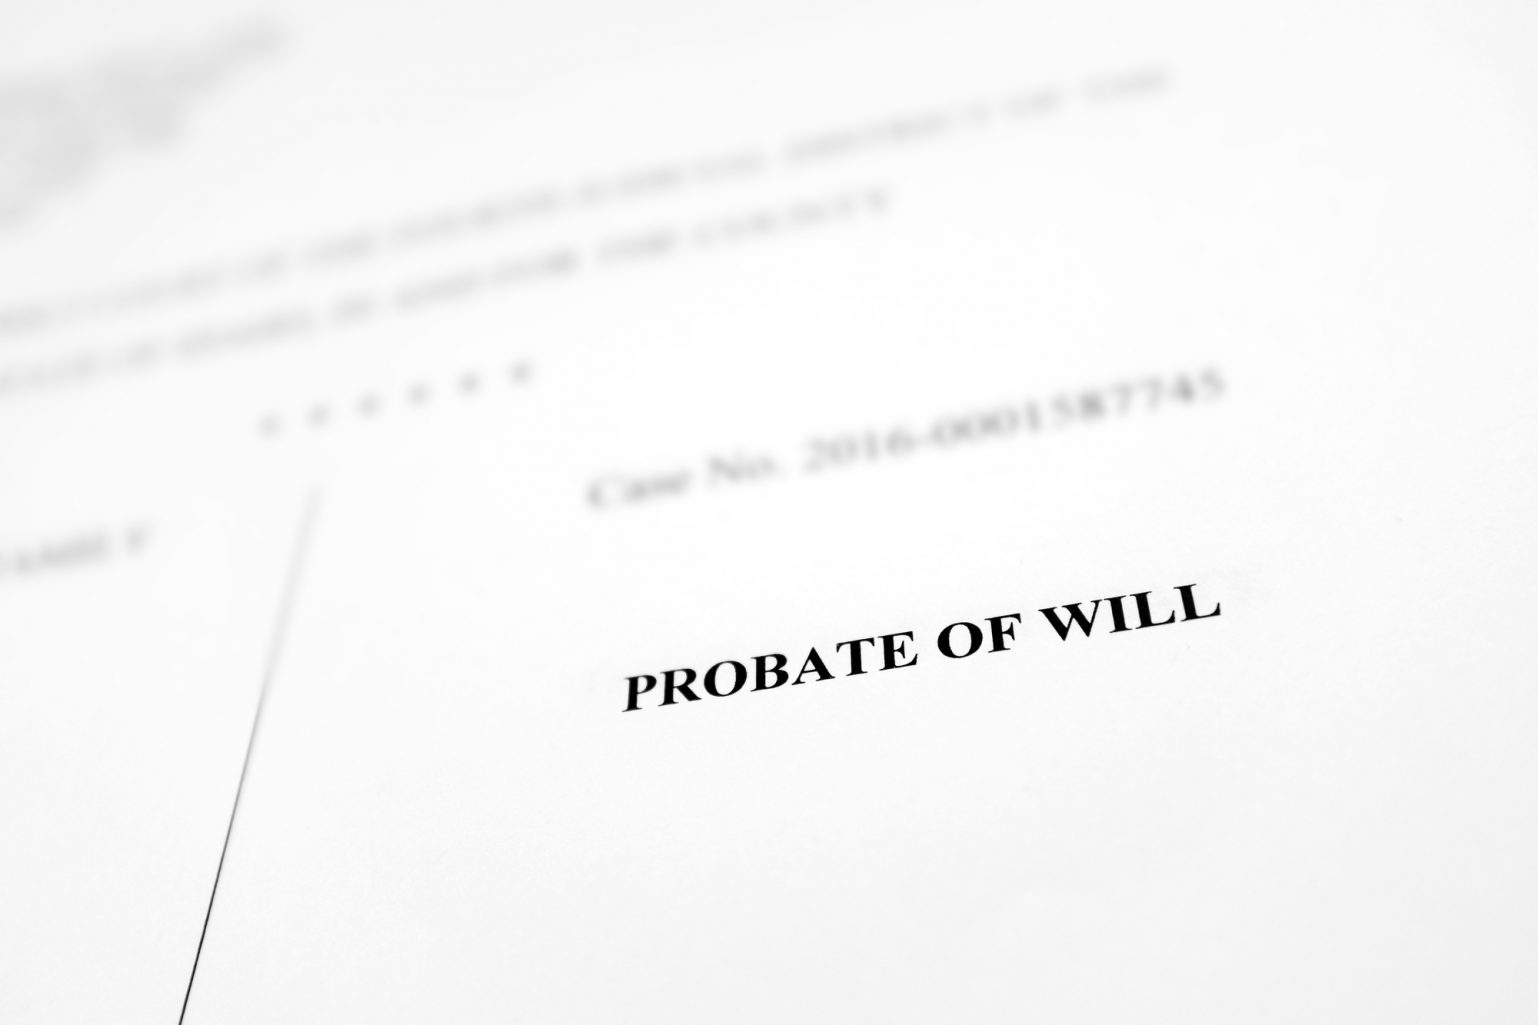 Probate Litigation: How to Deal With Estate Disputes